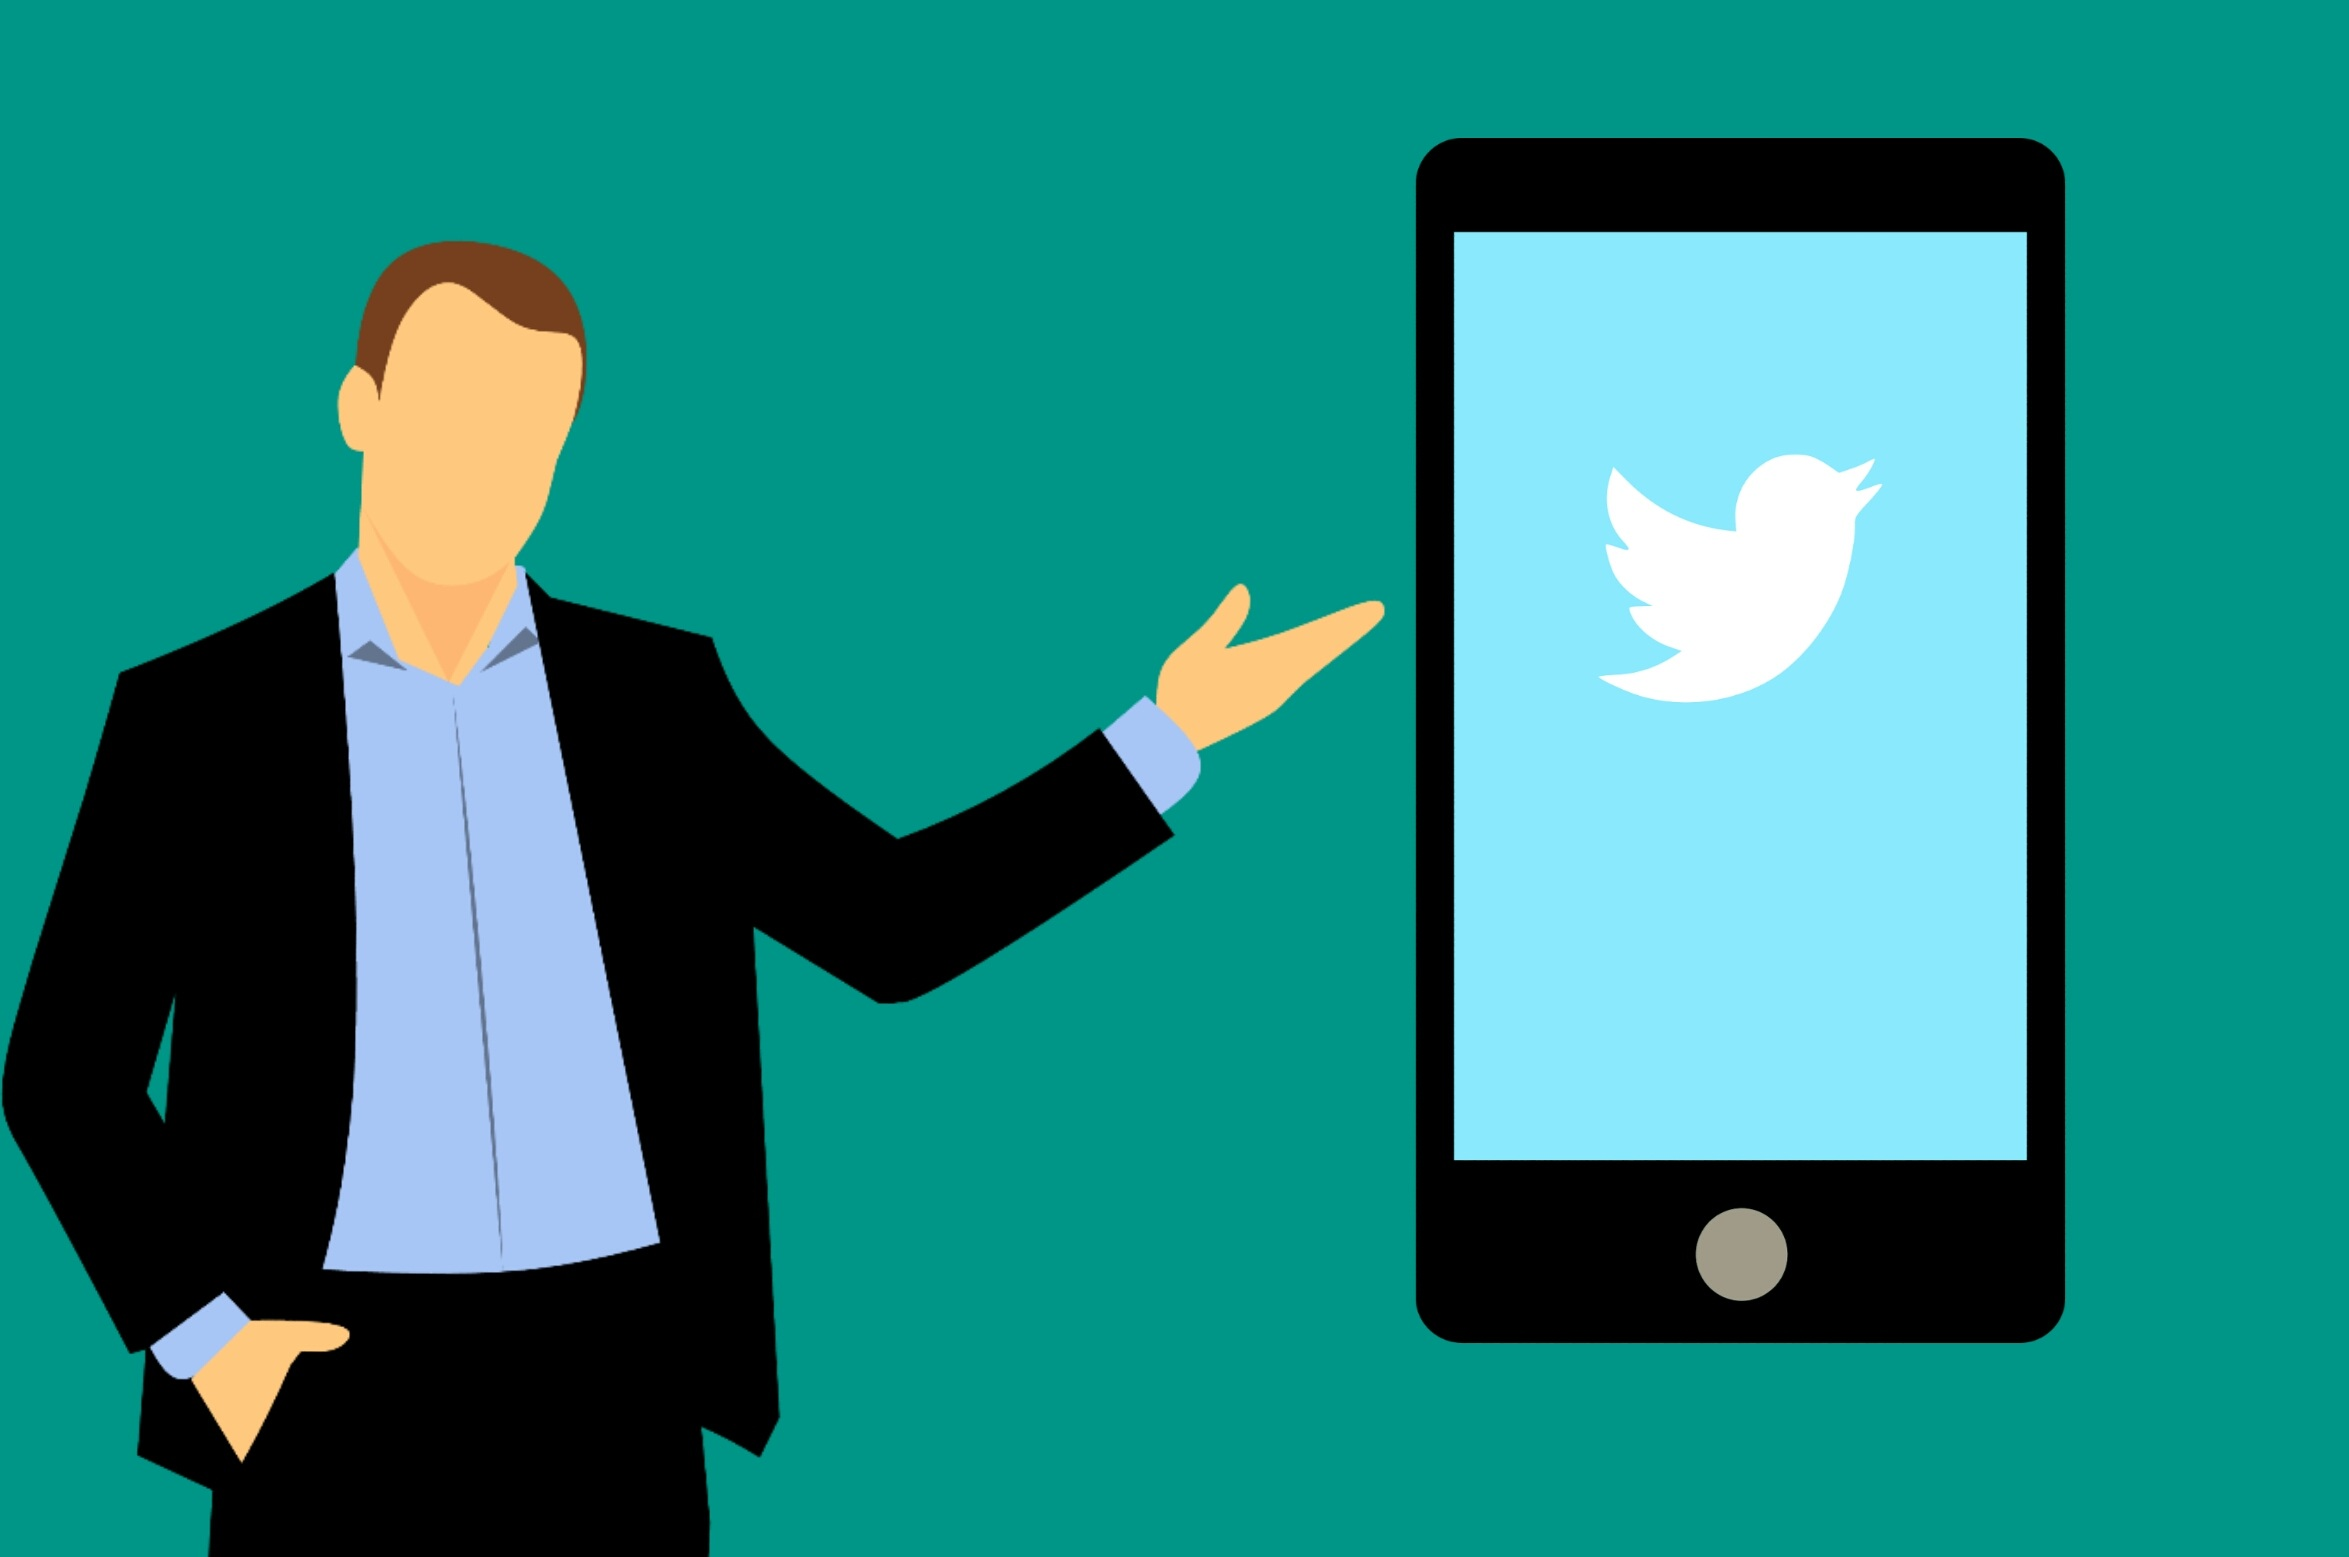 using social media expand your network